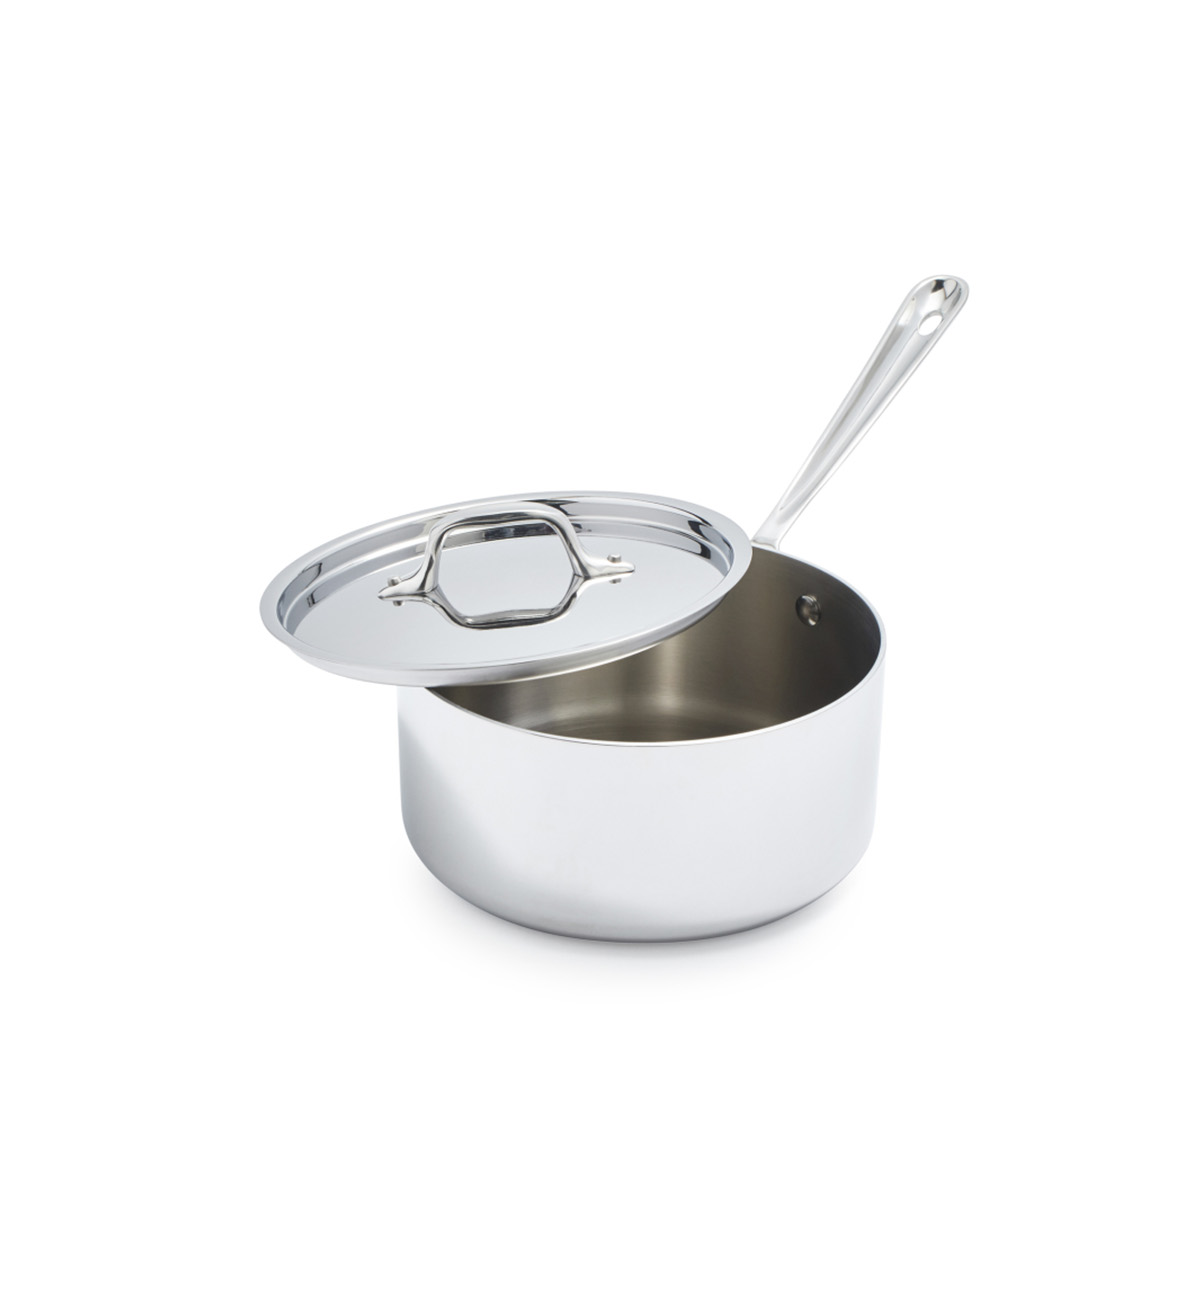 All-Clad Stainless Steel Saucepans with Lids